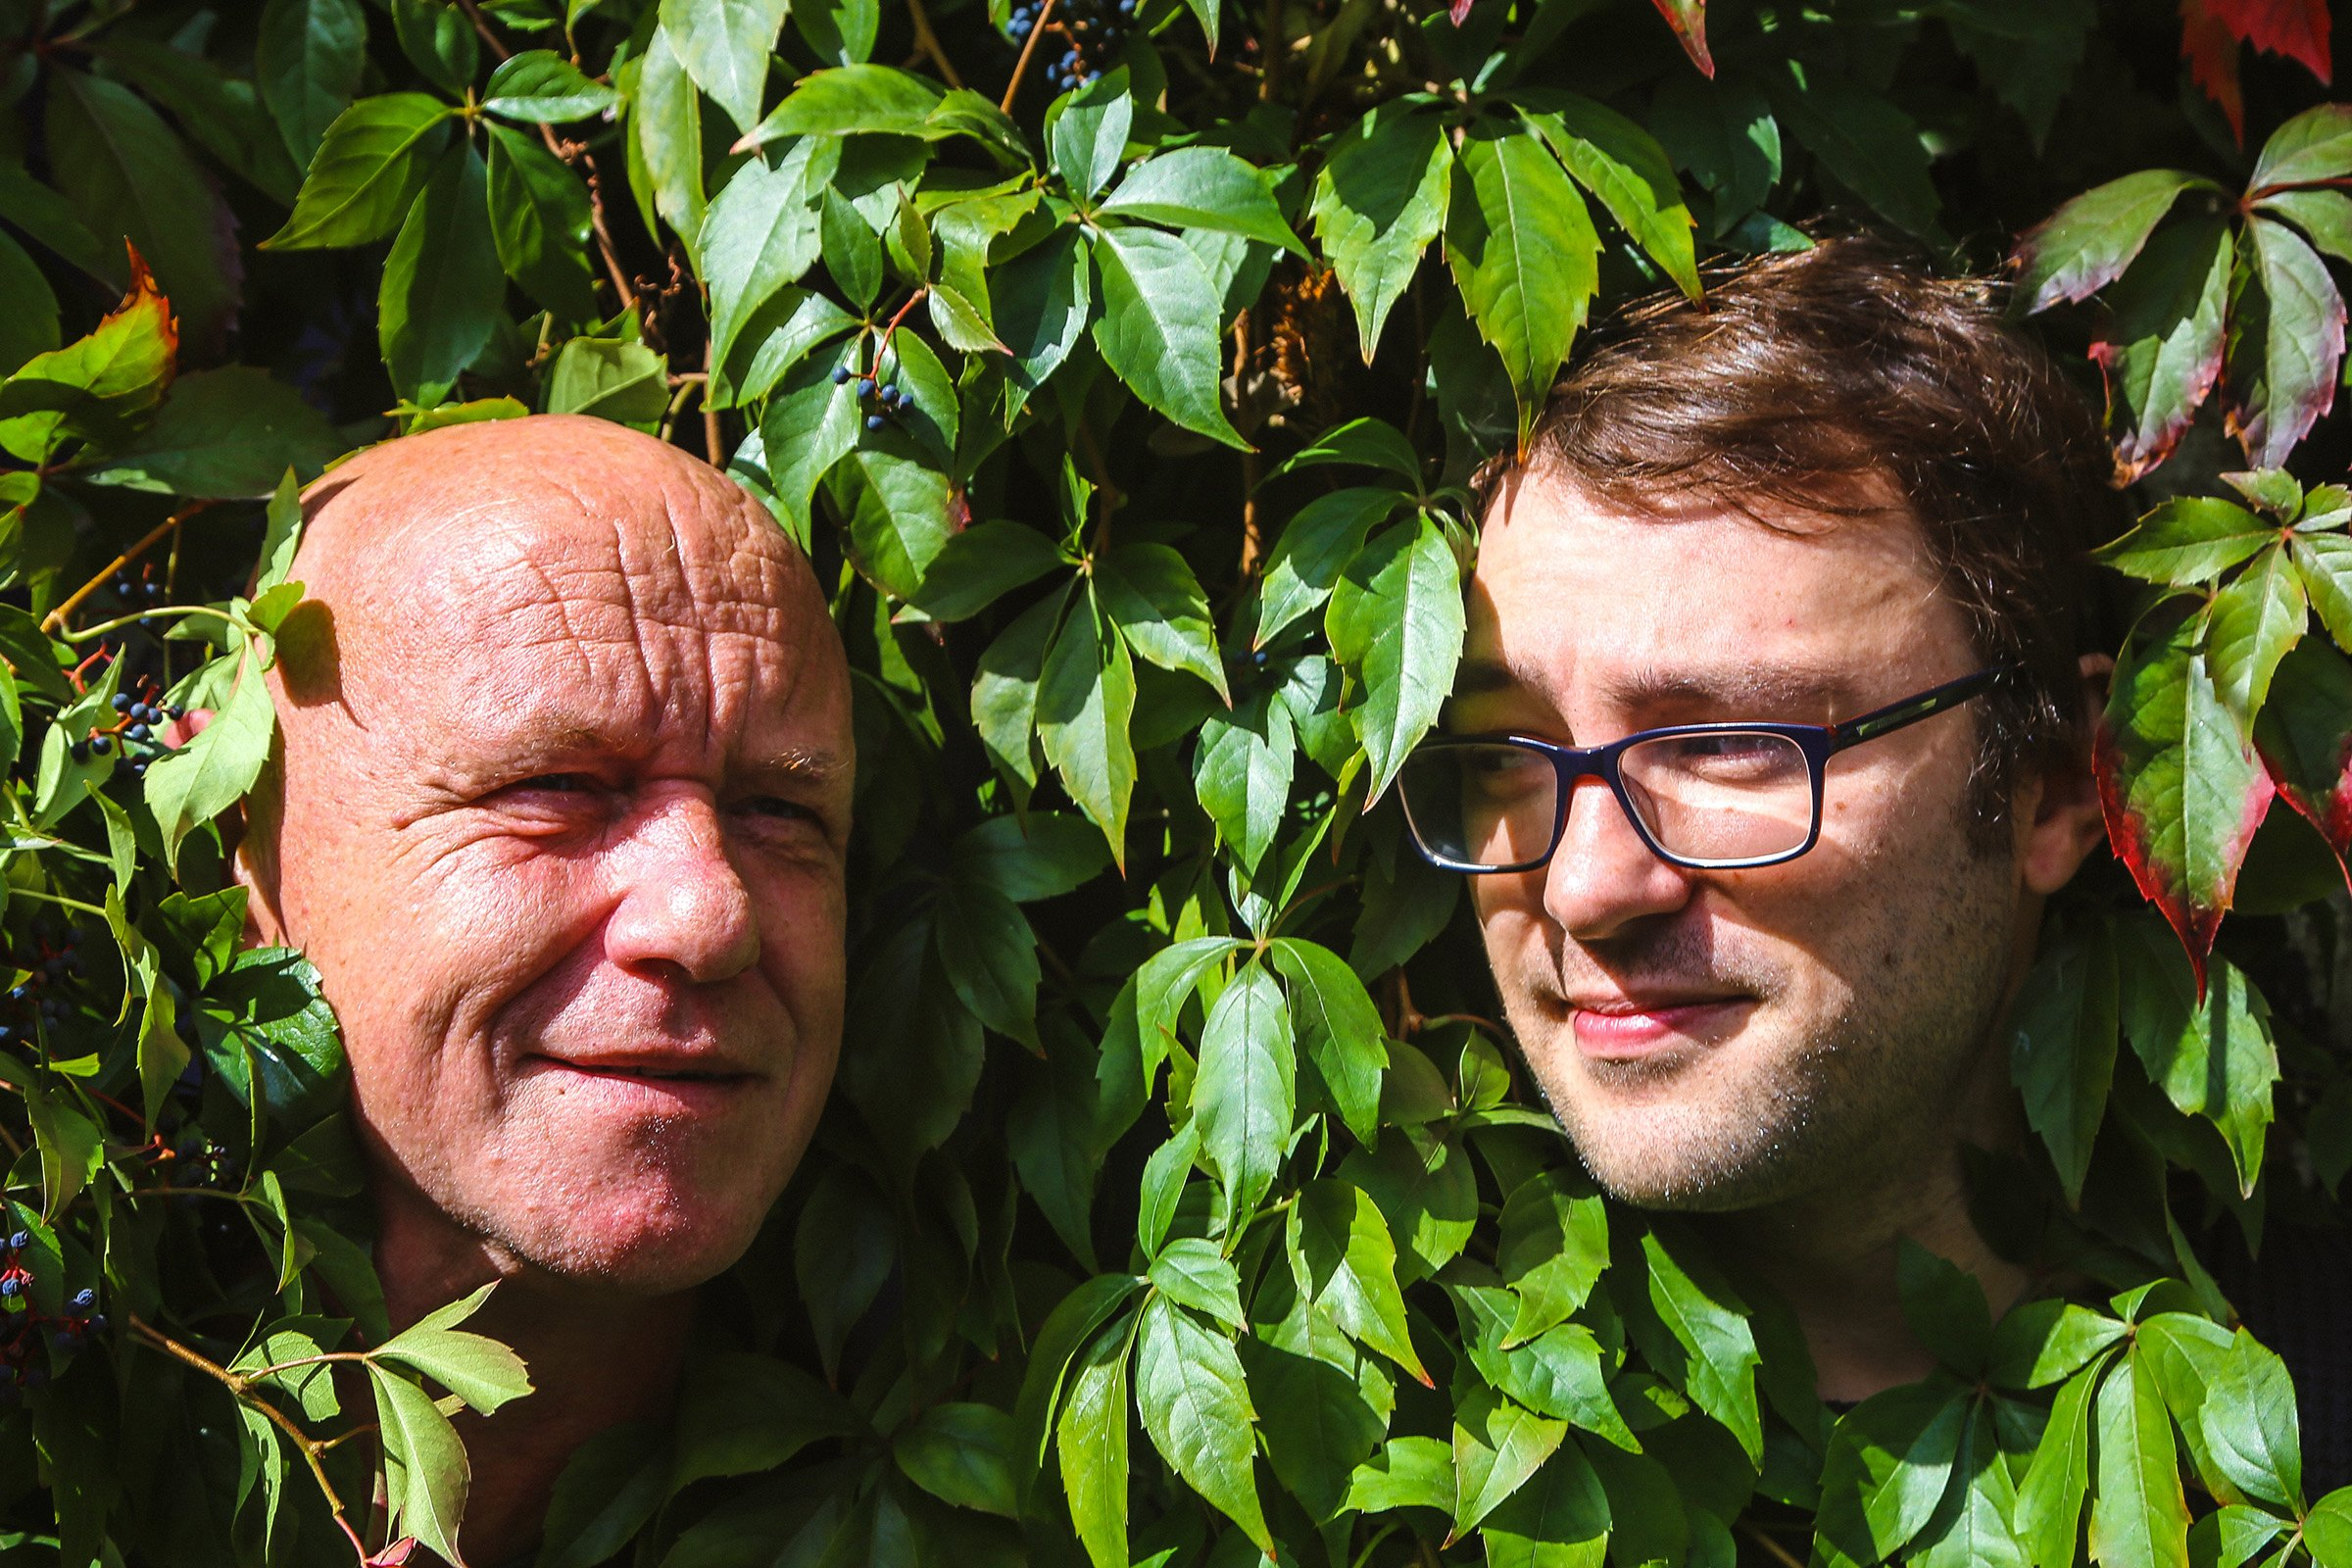 THE ORB announce new album 'Abolition of the Royal Familia' out March 27th